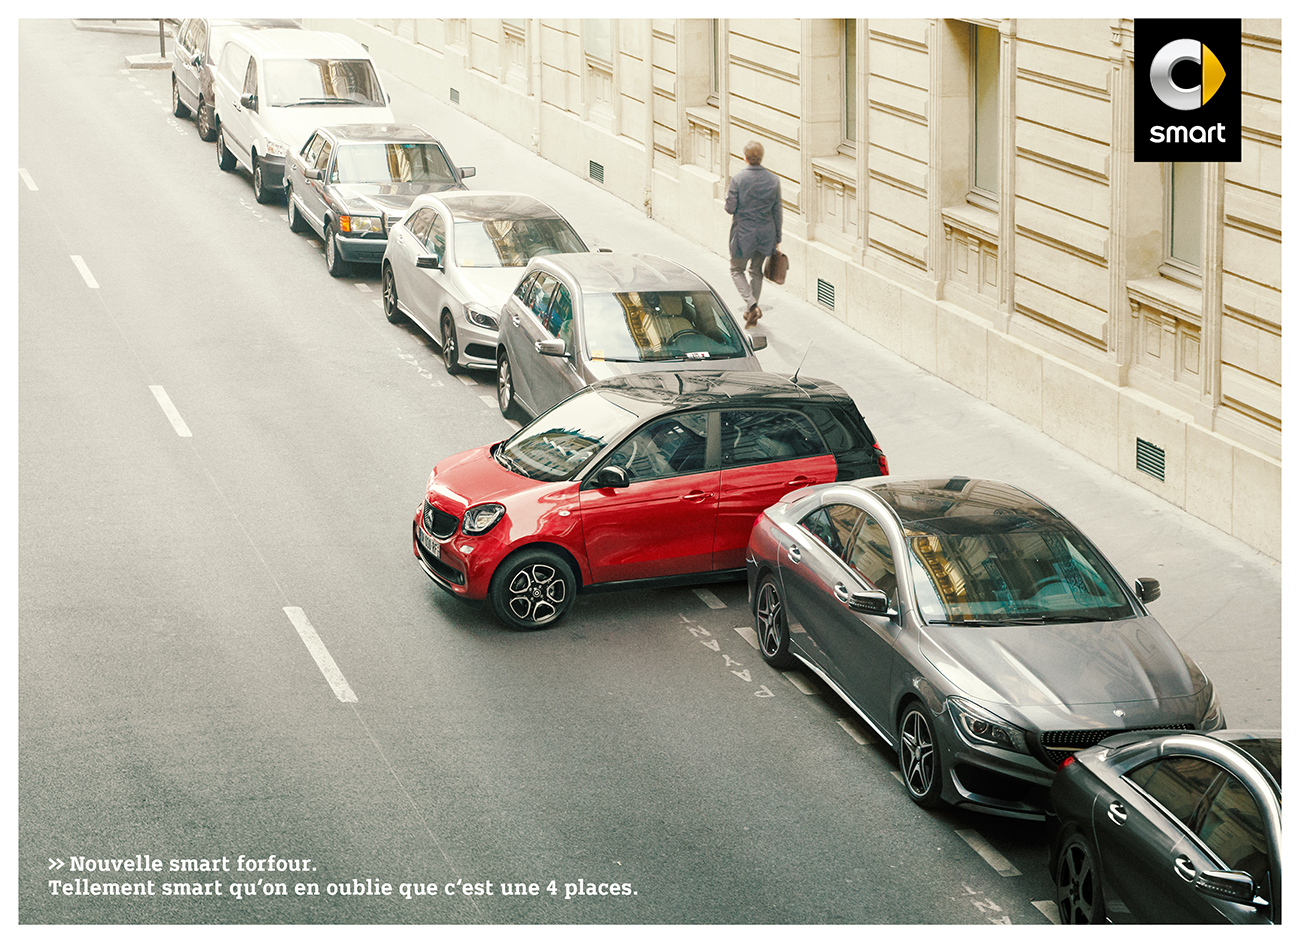 smart-fortwo-forfour-4-places-publicite-marketing-automobile-agence-clm-bbdo-paris-1